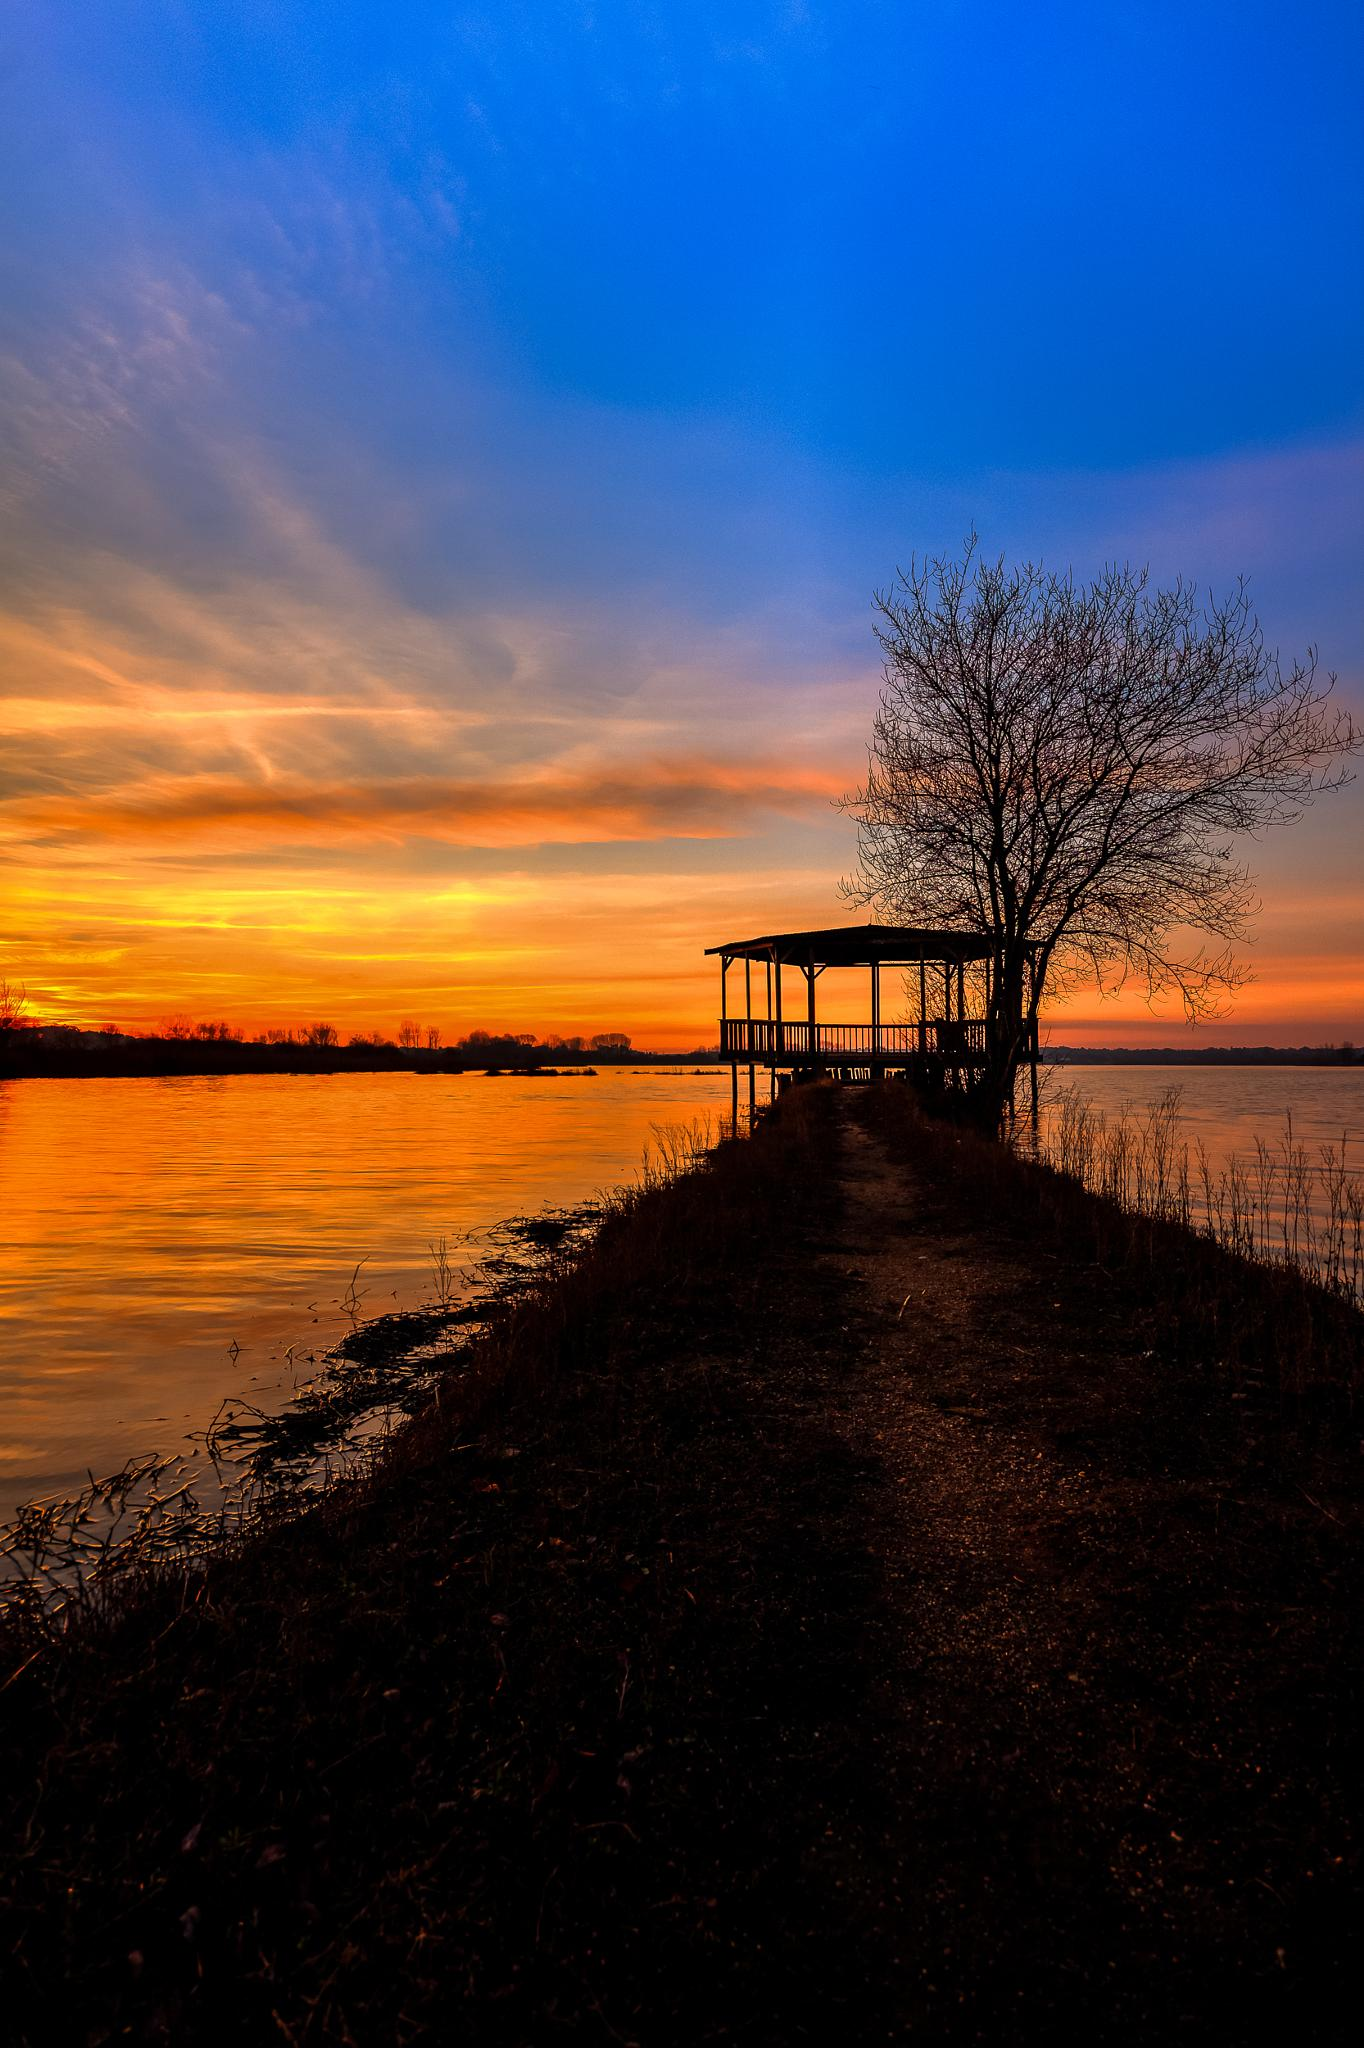 Sunset at the lake by NunoMiguelValente